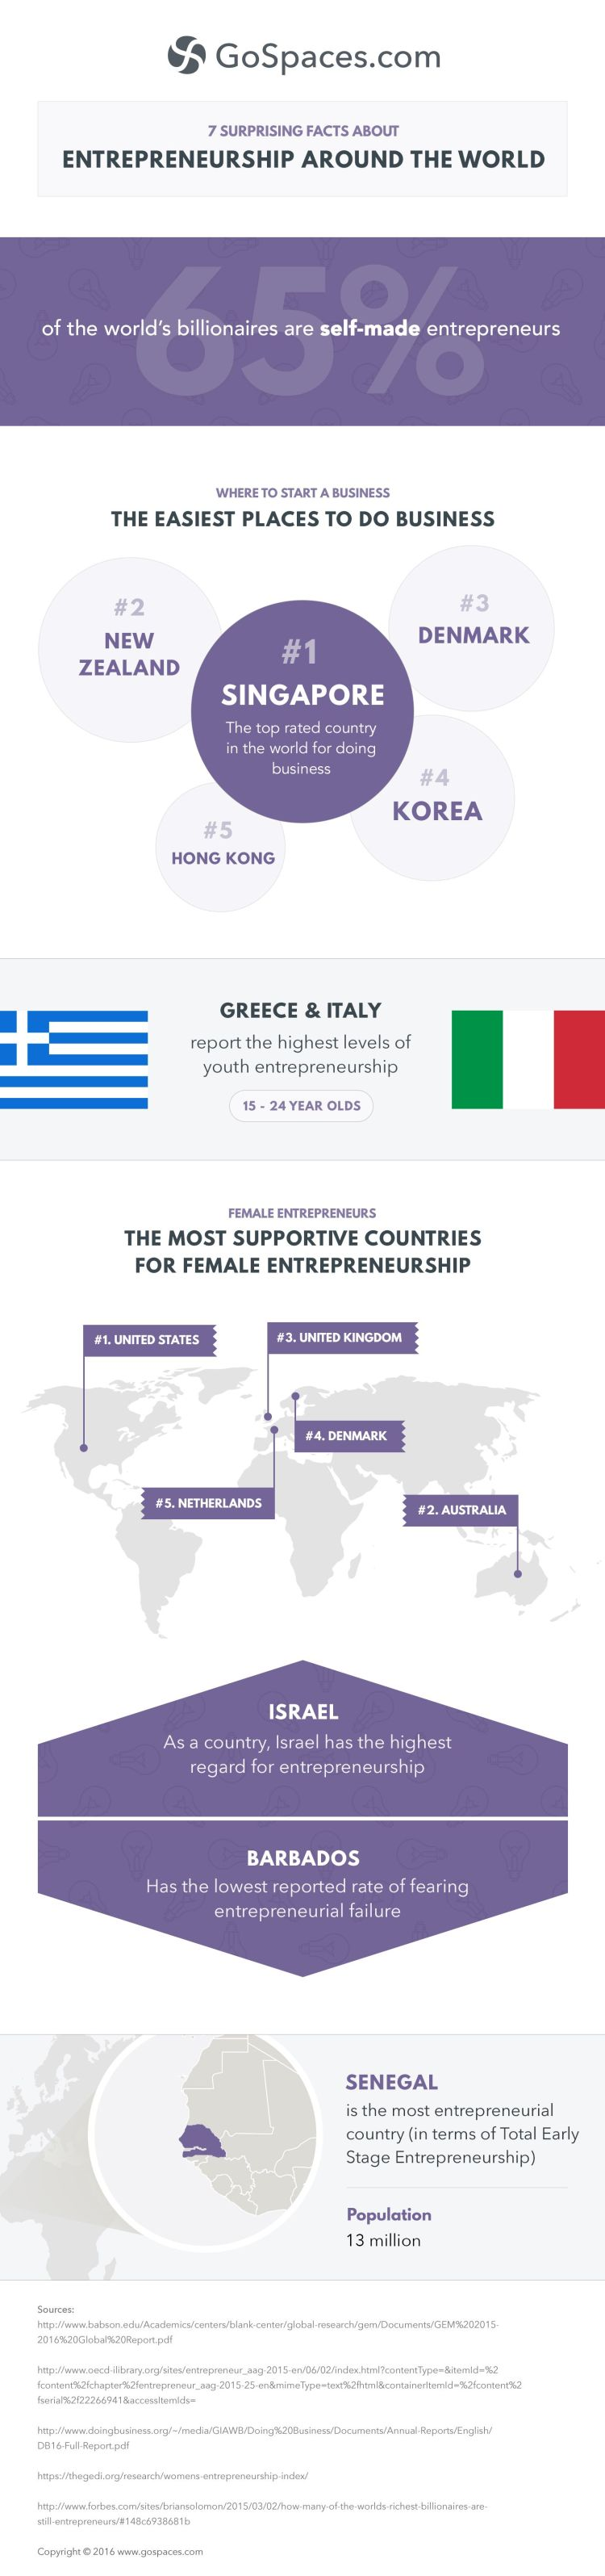 7 Surprising Facts About Entrepreneurship Around the World #Infographic